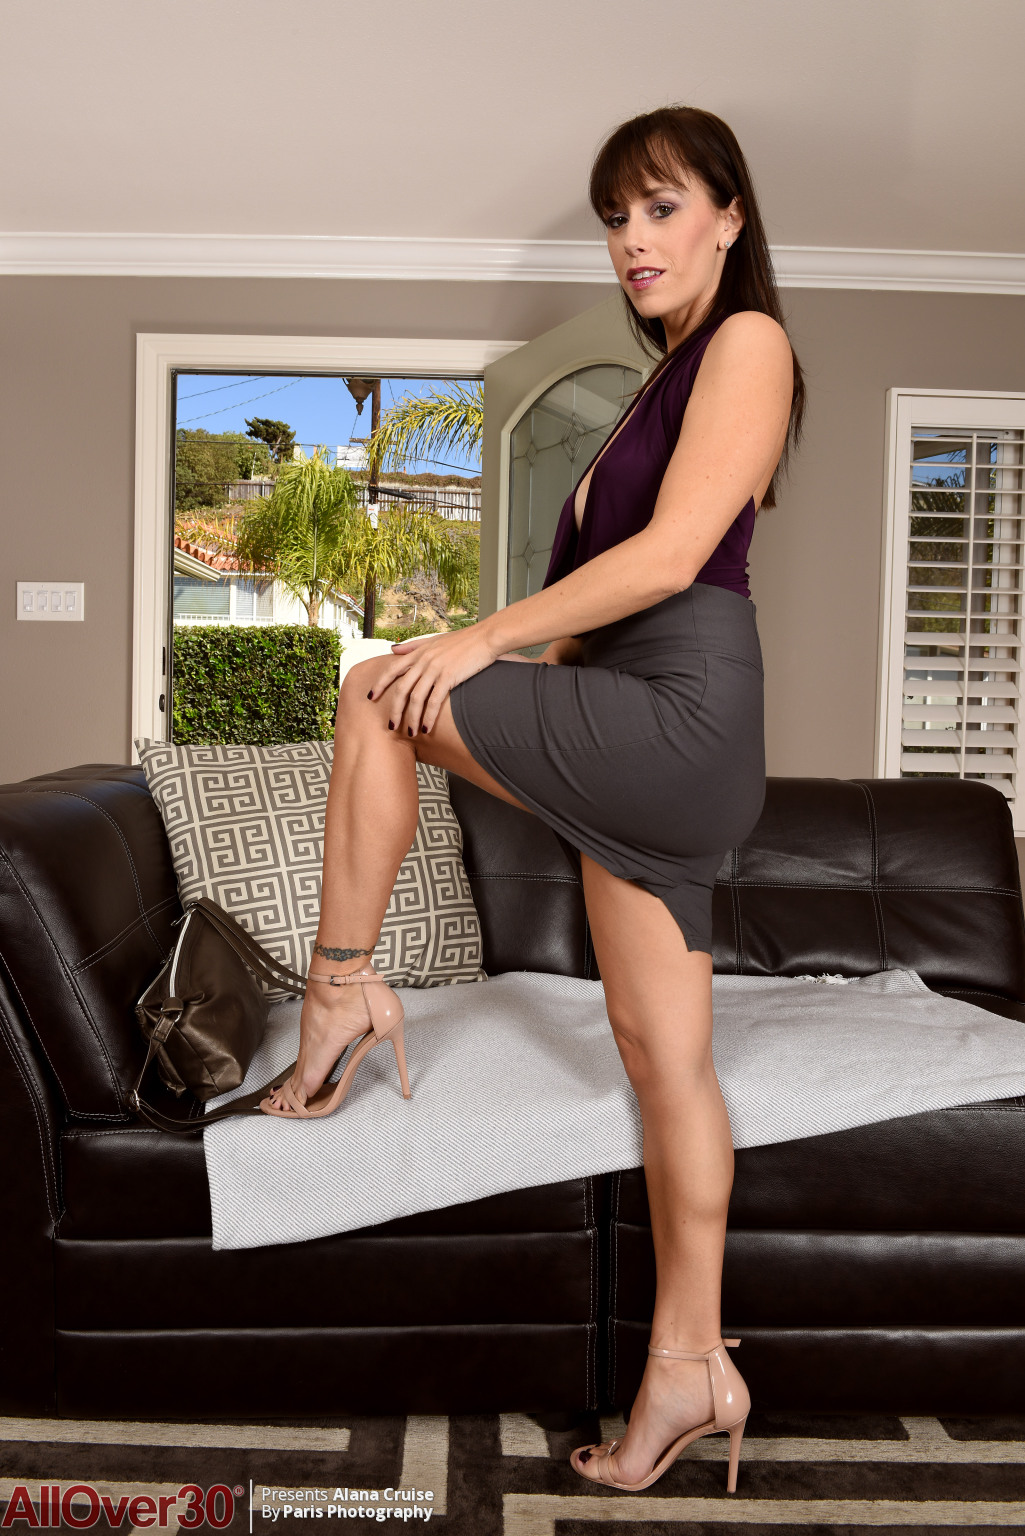 Alana Cruise Porn Actress alana cruise sexy feet   download free nude porn picture